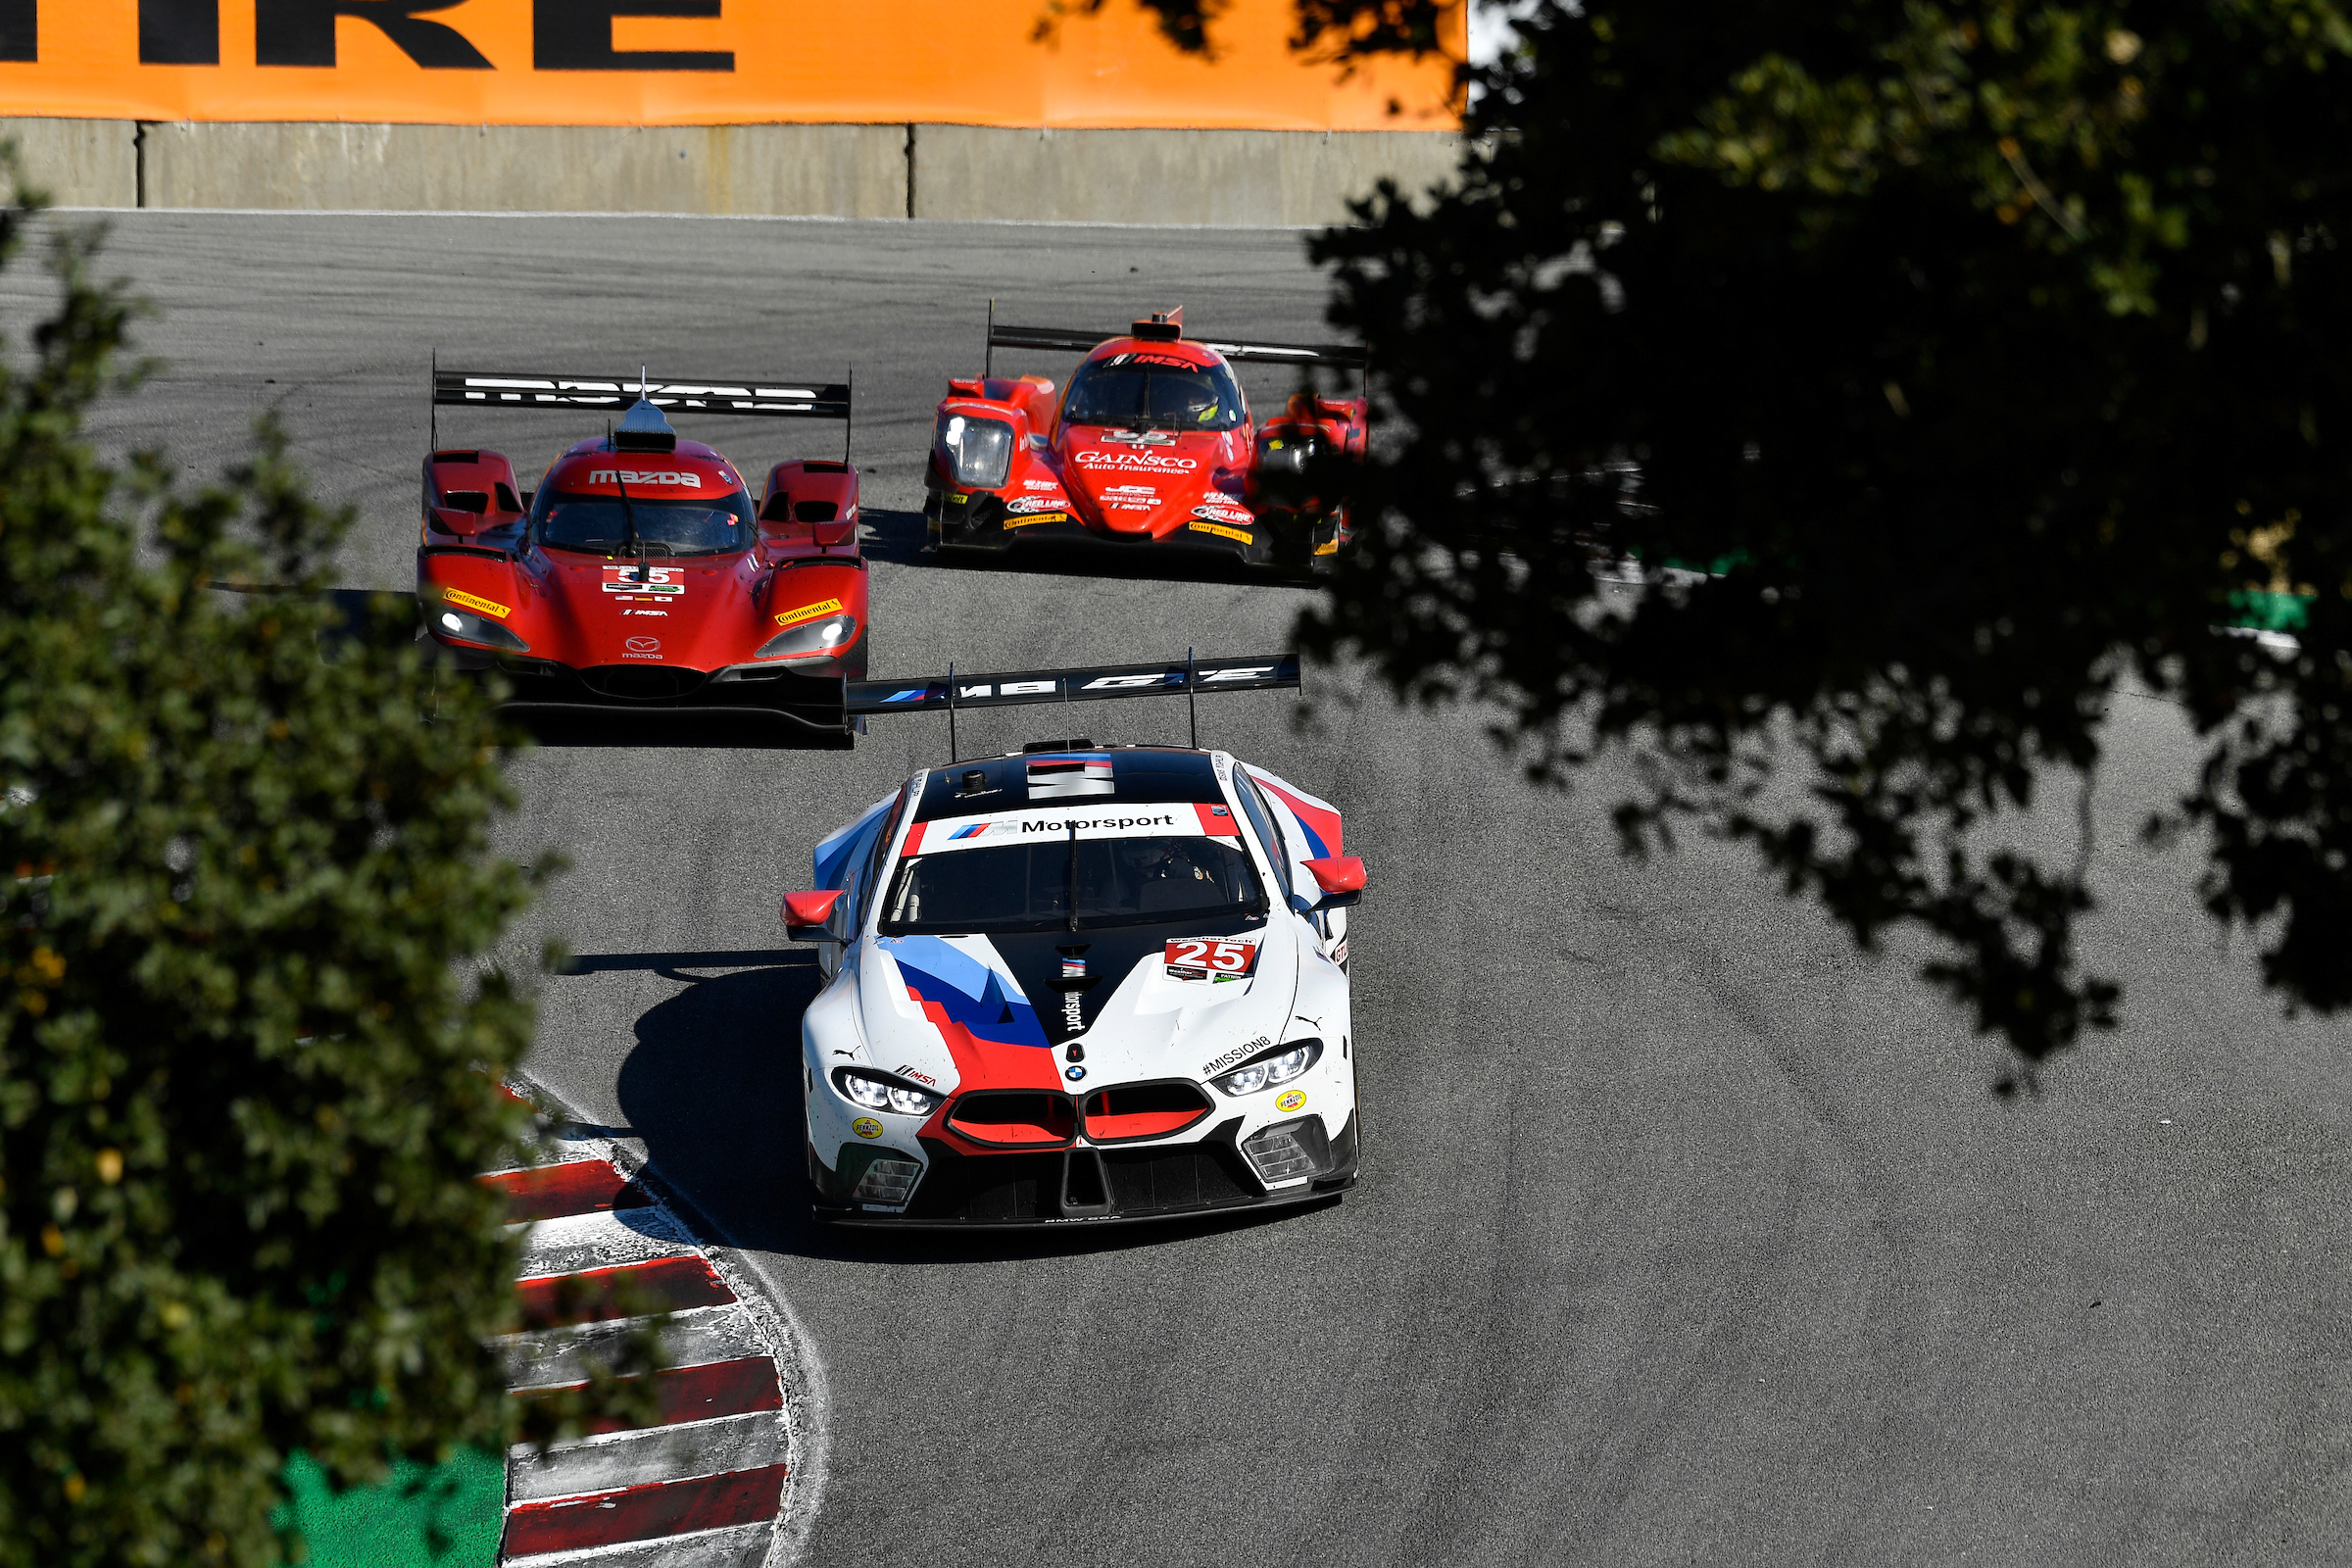 Video: Laguna Seca race recap